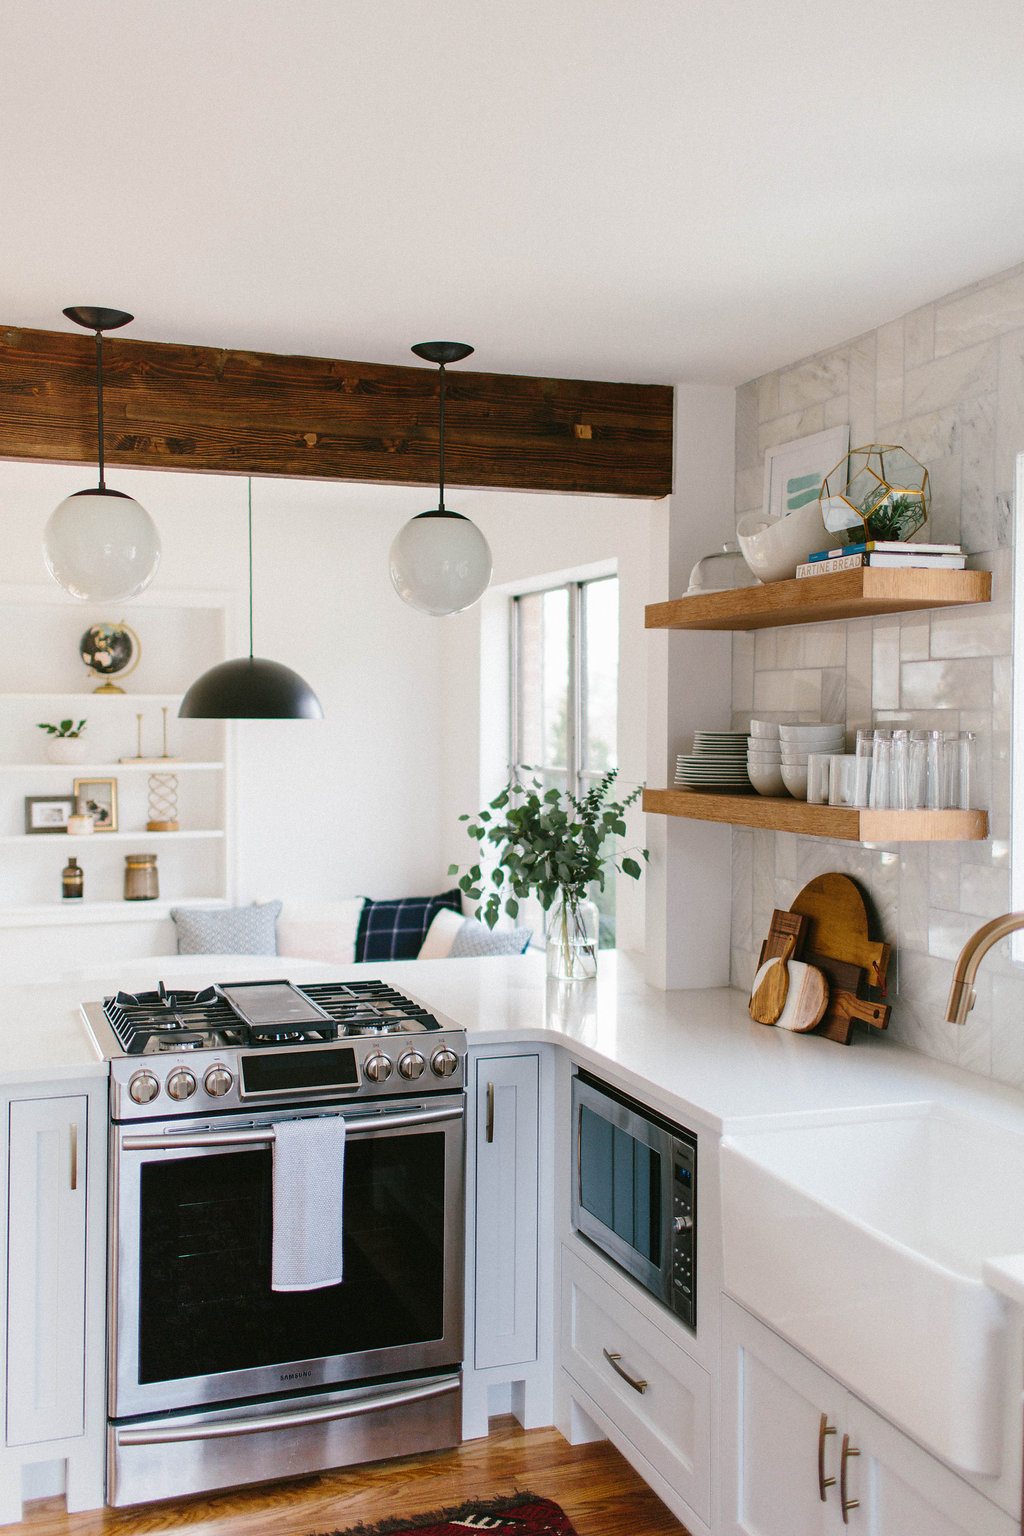 CRYSTAL ANN: Kitchen Reveal: